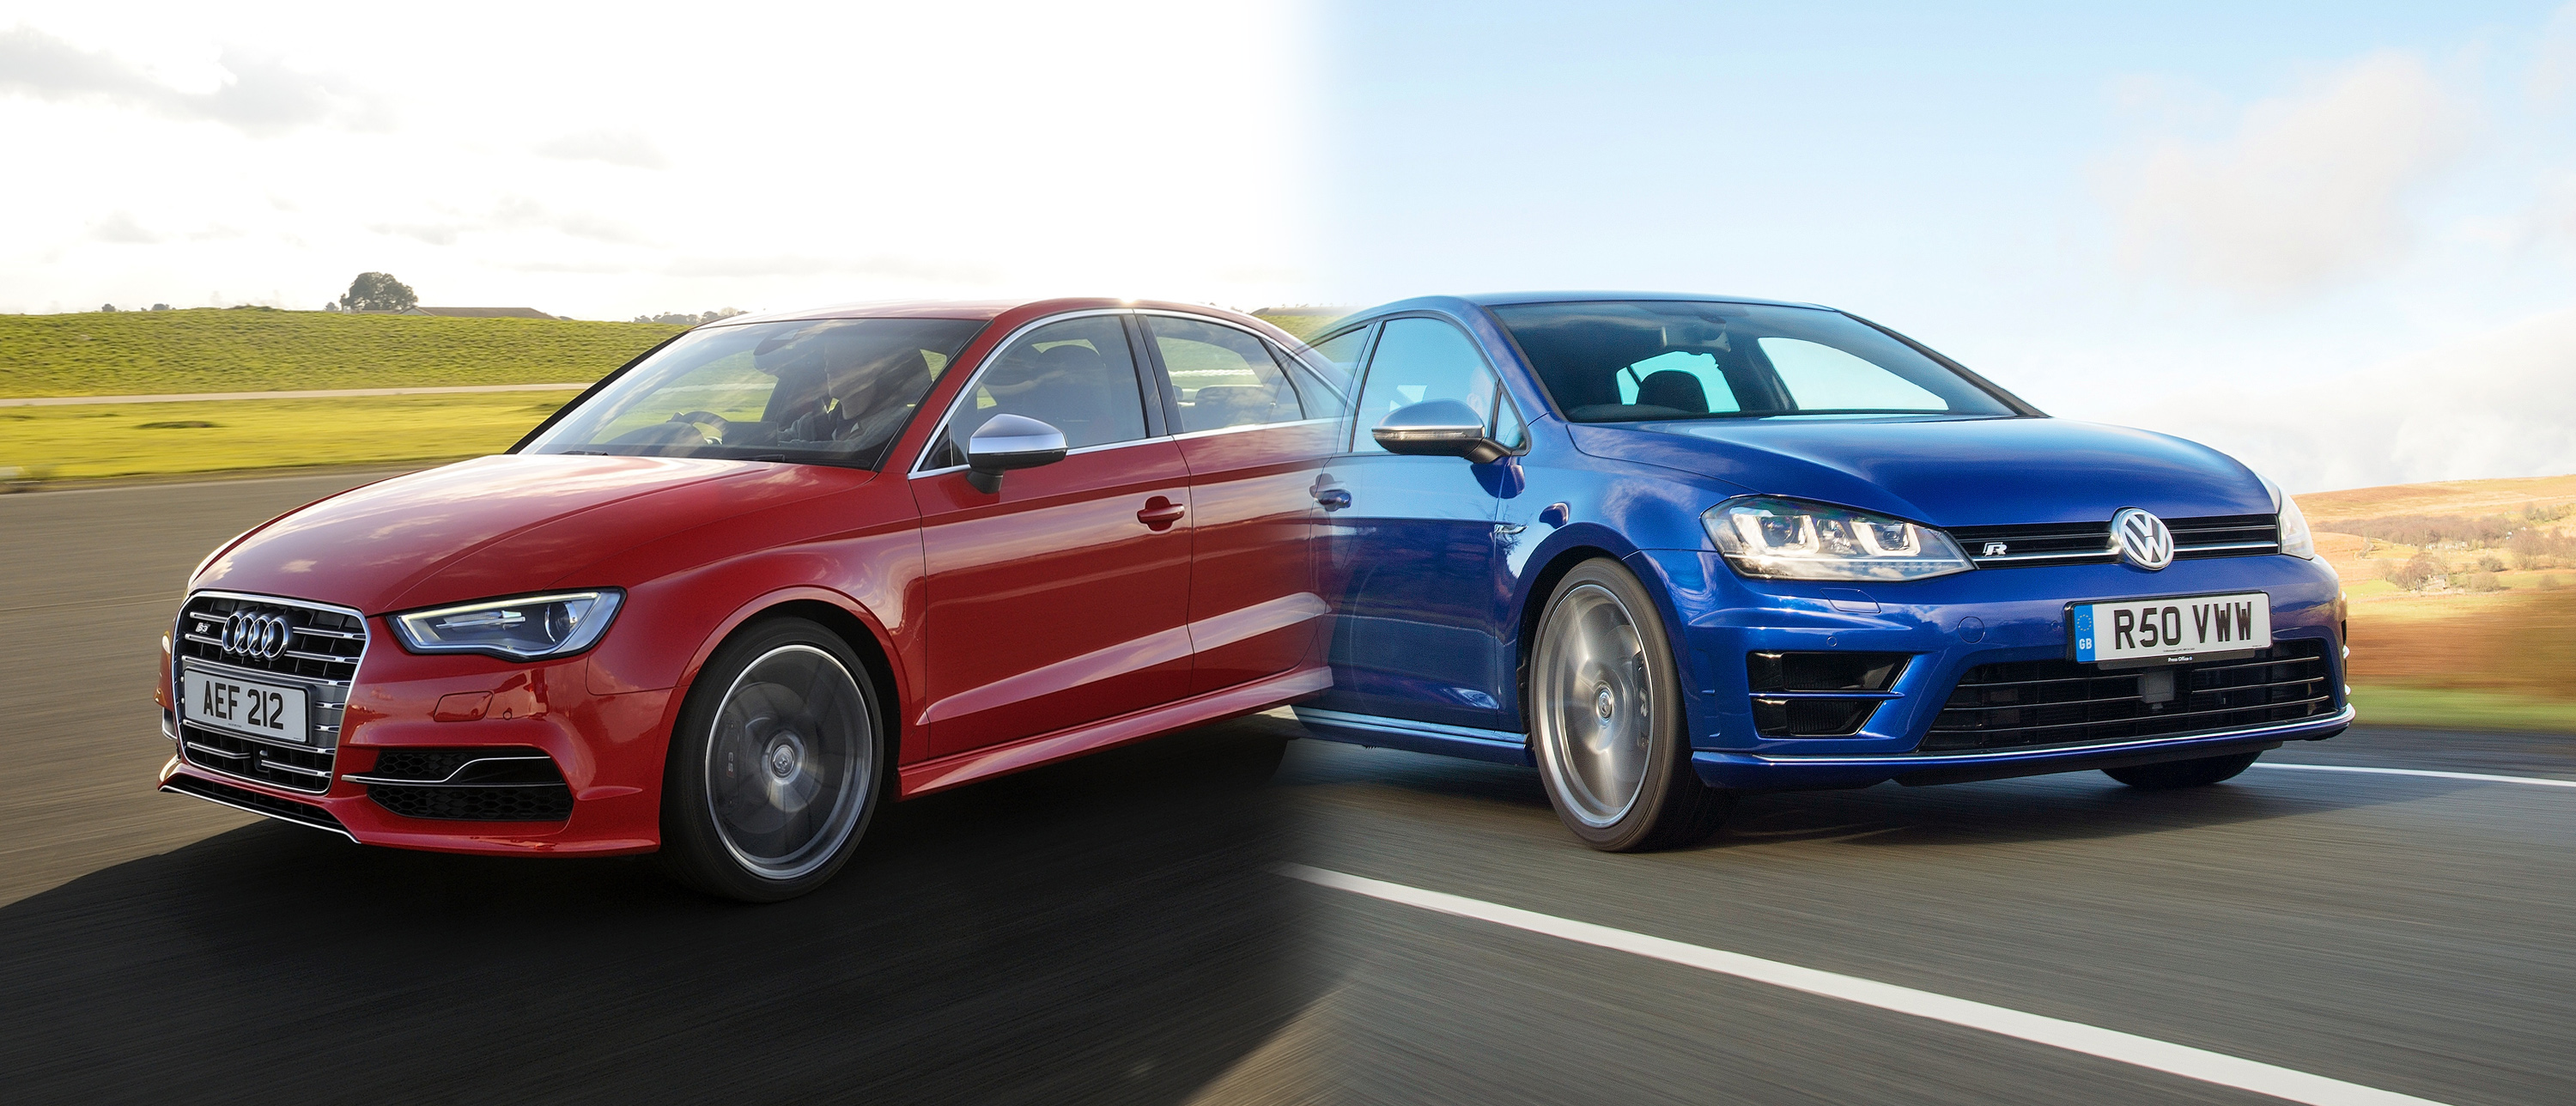 VW Golf R Vs Audi S Which Is The Best Super Hatch On Sale In The UK - Is audi made by vw